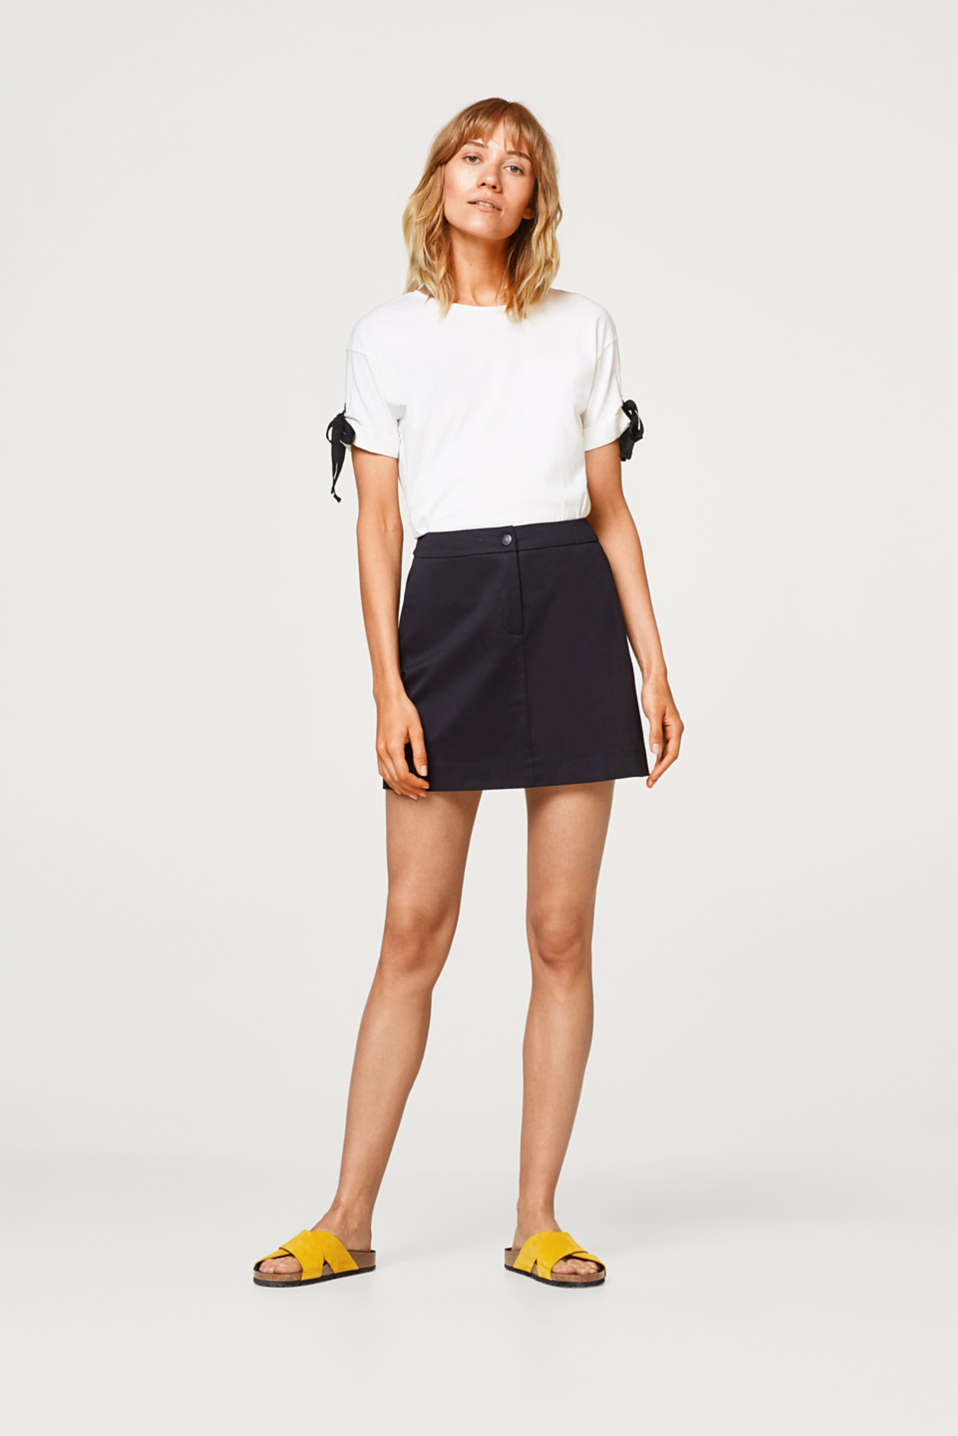 Esprit - Mini skirt in a chino style, made of stretch cotton